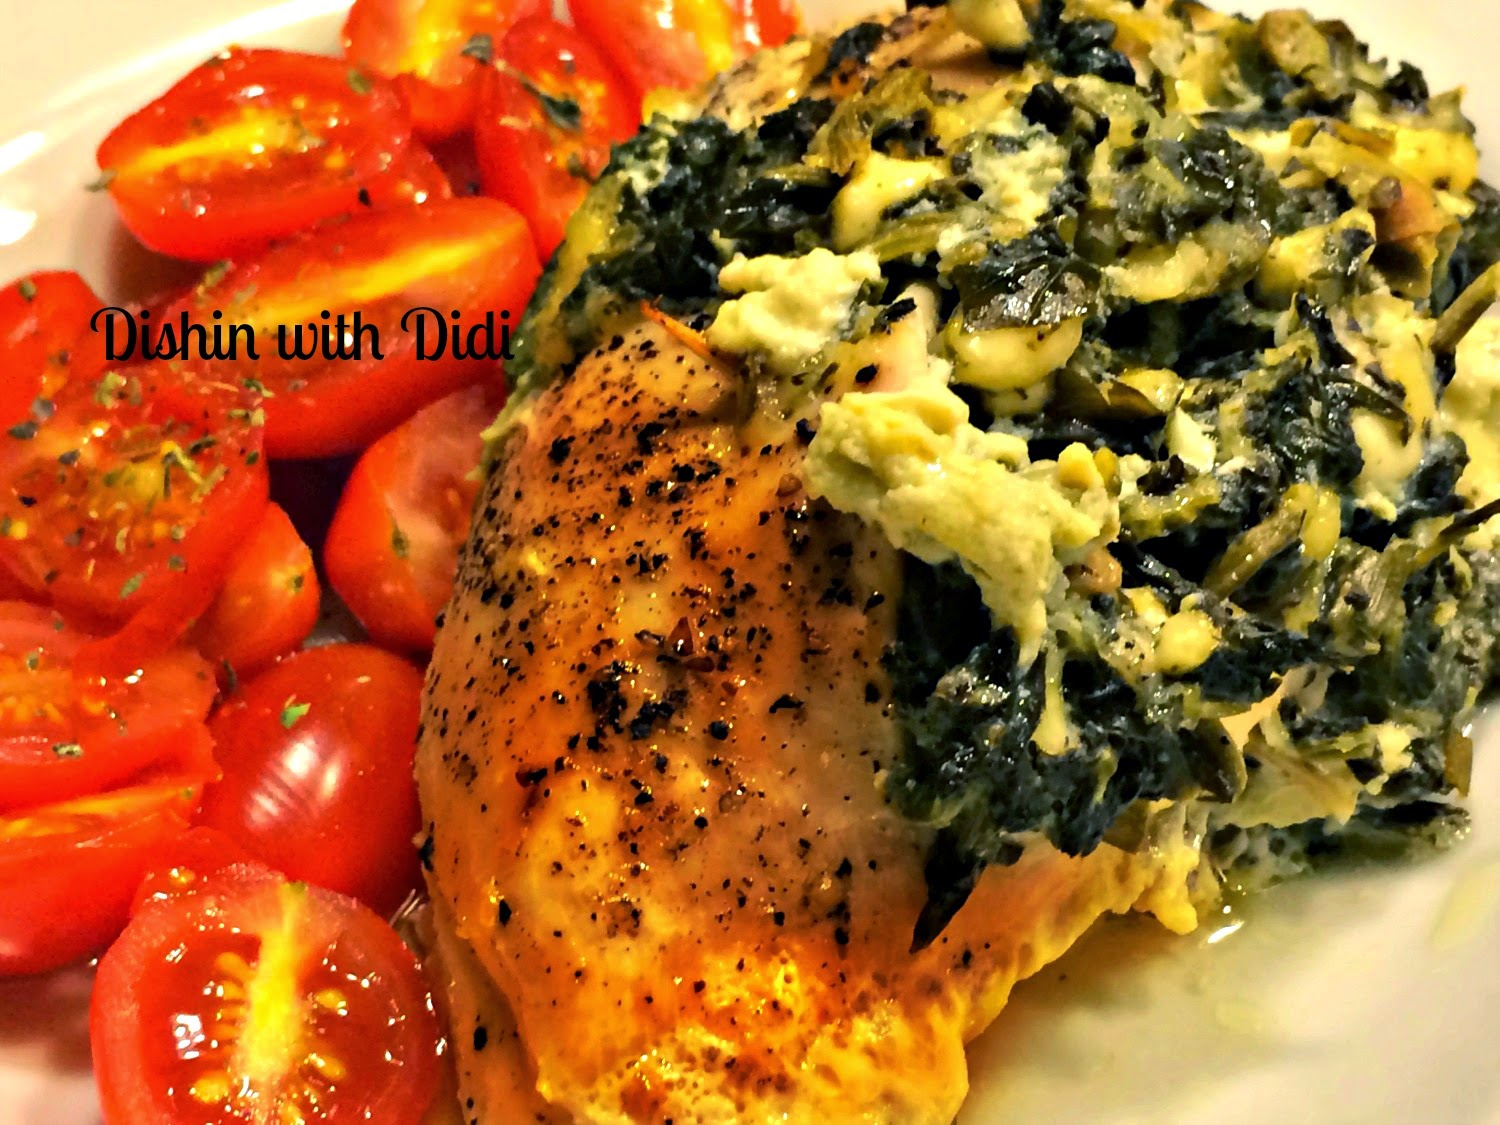 Baked Spinach Feta Cheese Stuffed Chicken Breasts Low Carb Super Easy Weeknight Dinner